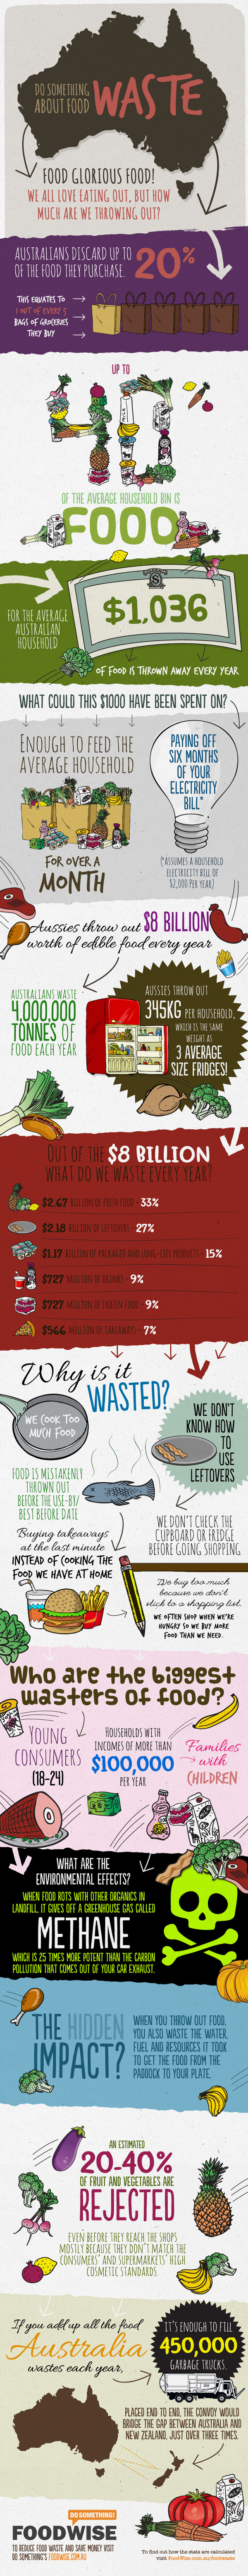 Australian food waste in a nutshell